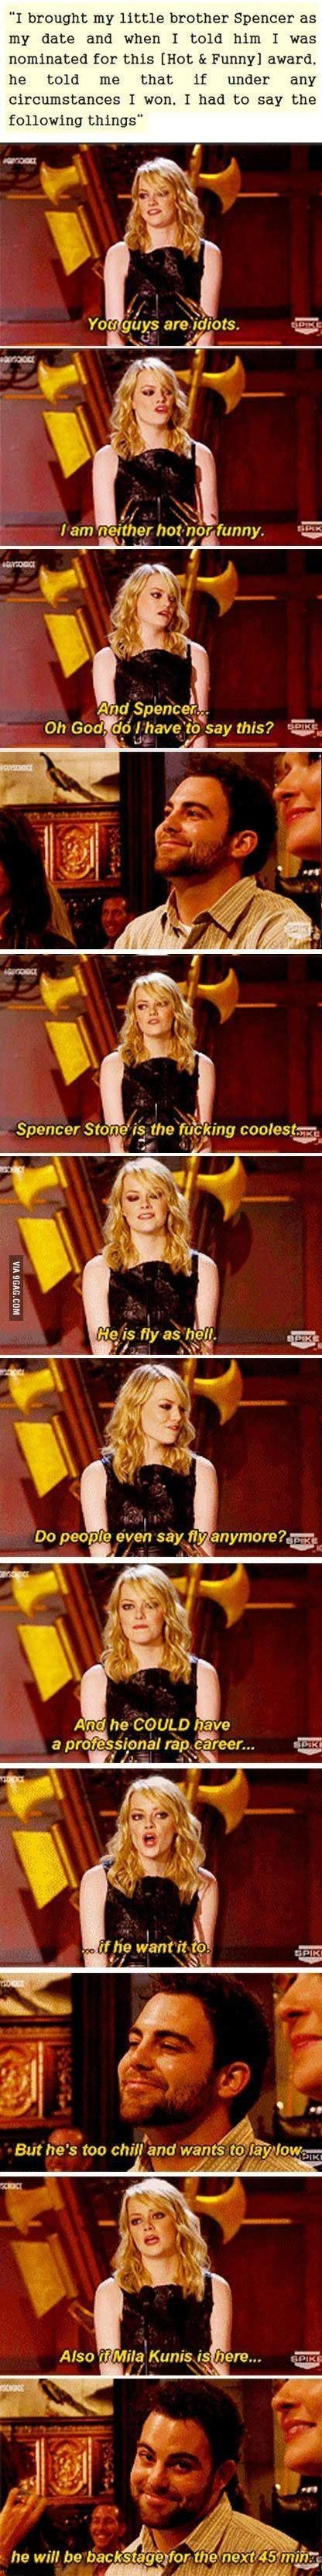 emma stone is by far the best sister ever - Periodic Table Activity Darn My Kid Brother